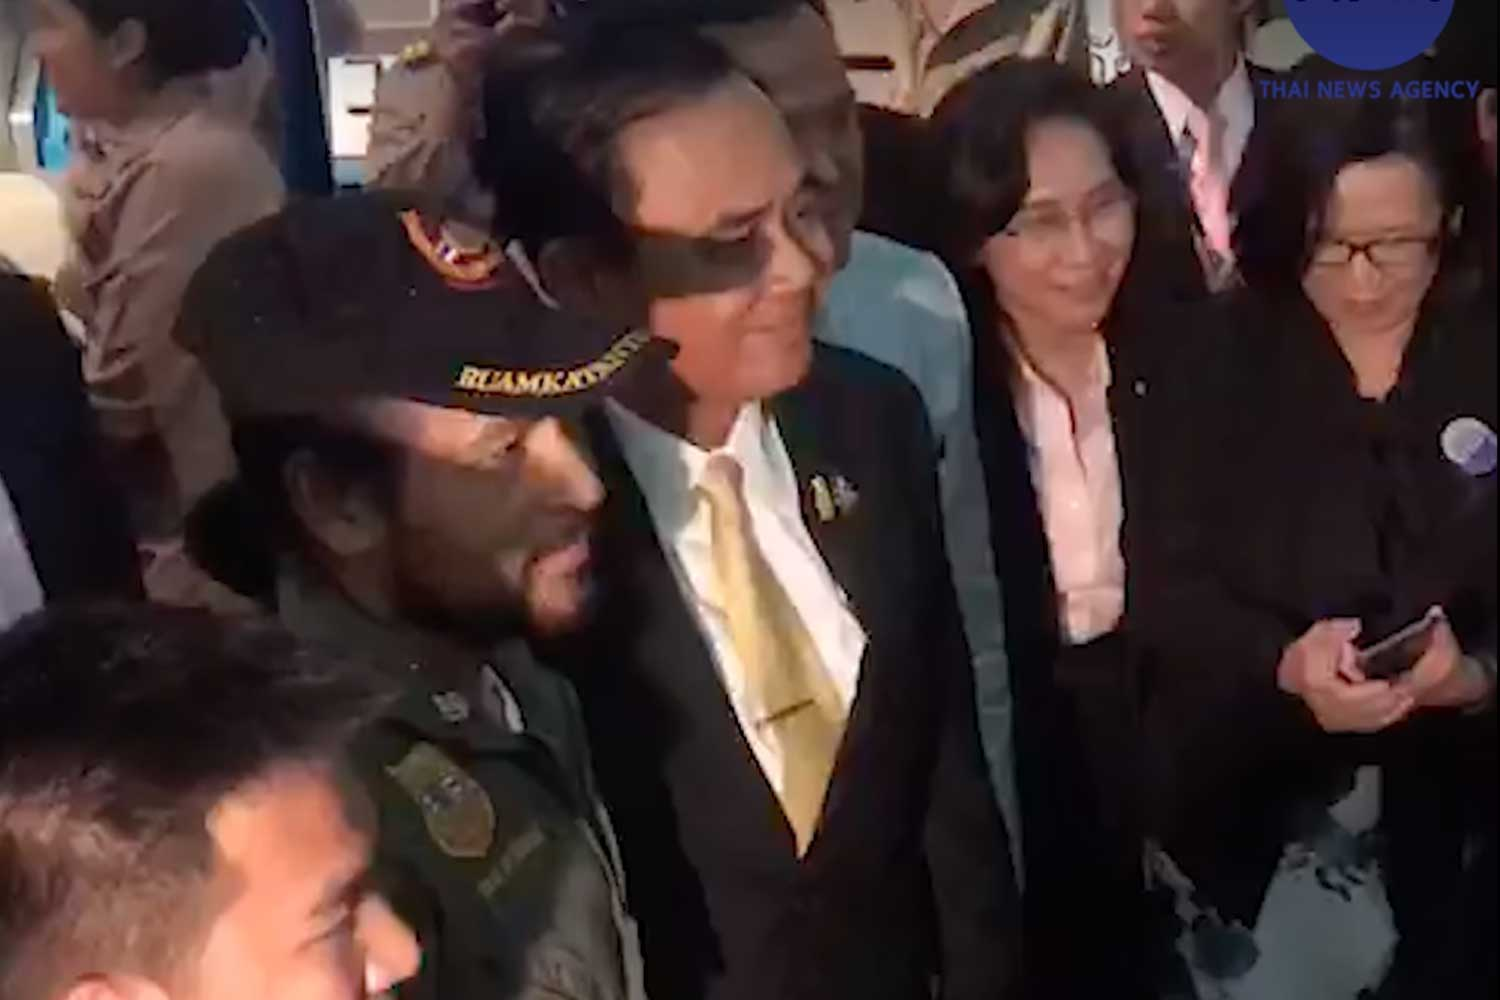 Actor Bin Bunluerit, second from left, with Prime Minister Prayut Chan-o-cha, third from left, after the government's public appeal for donations for flood victims at TV Channel 9 in Bangkok on Tuesday night. (Screenshot from Thai News Agency)